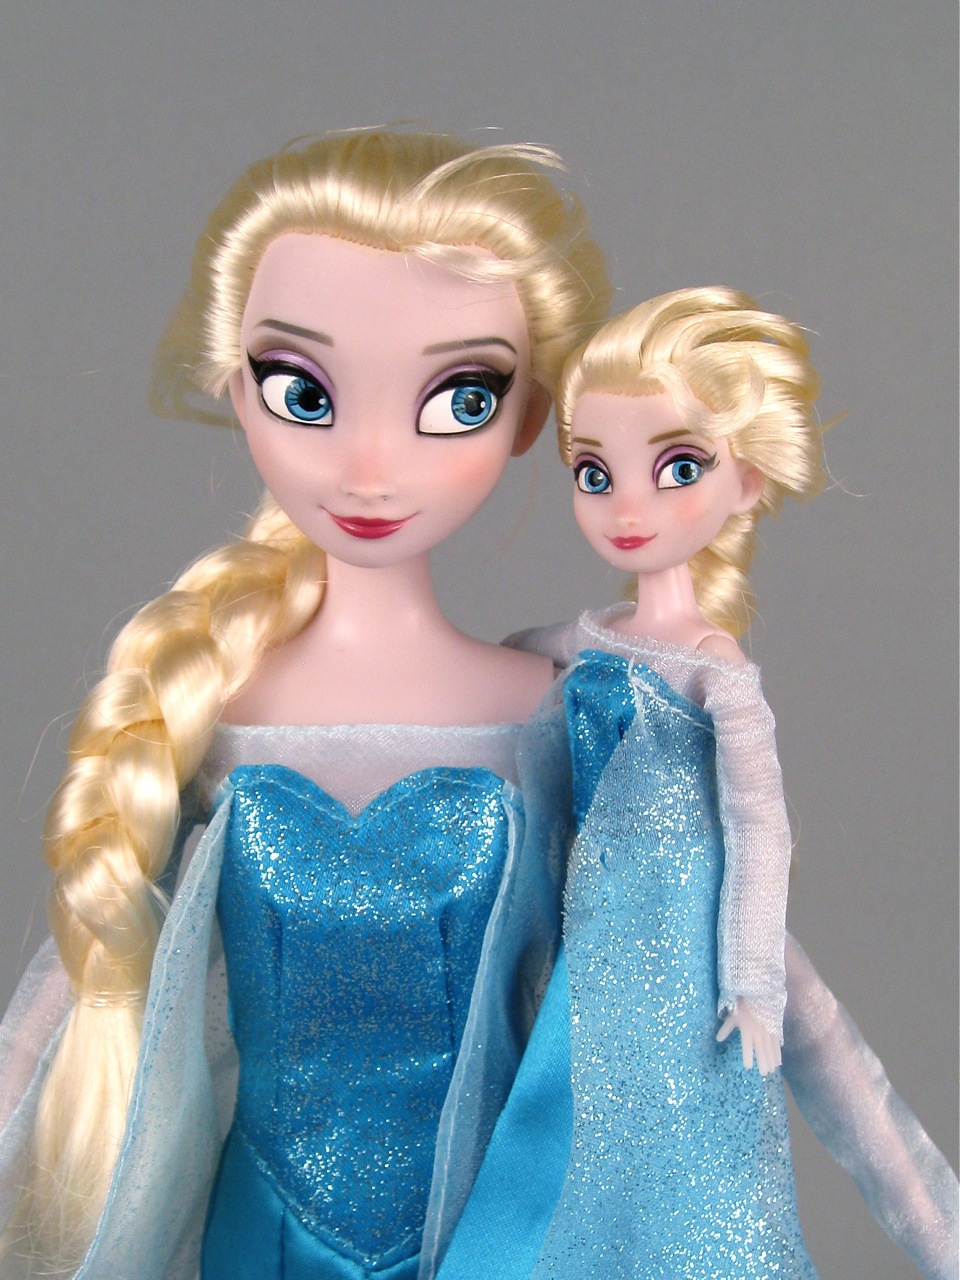 Elsa Mini Doll Wardrobe set